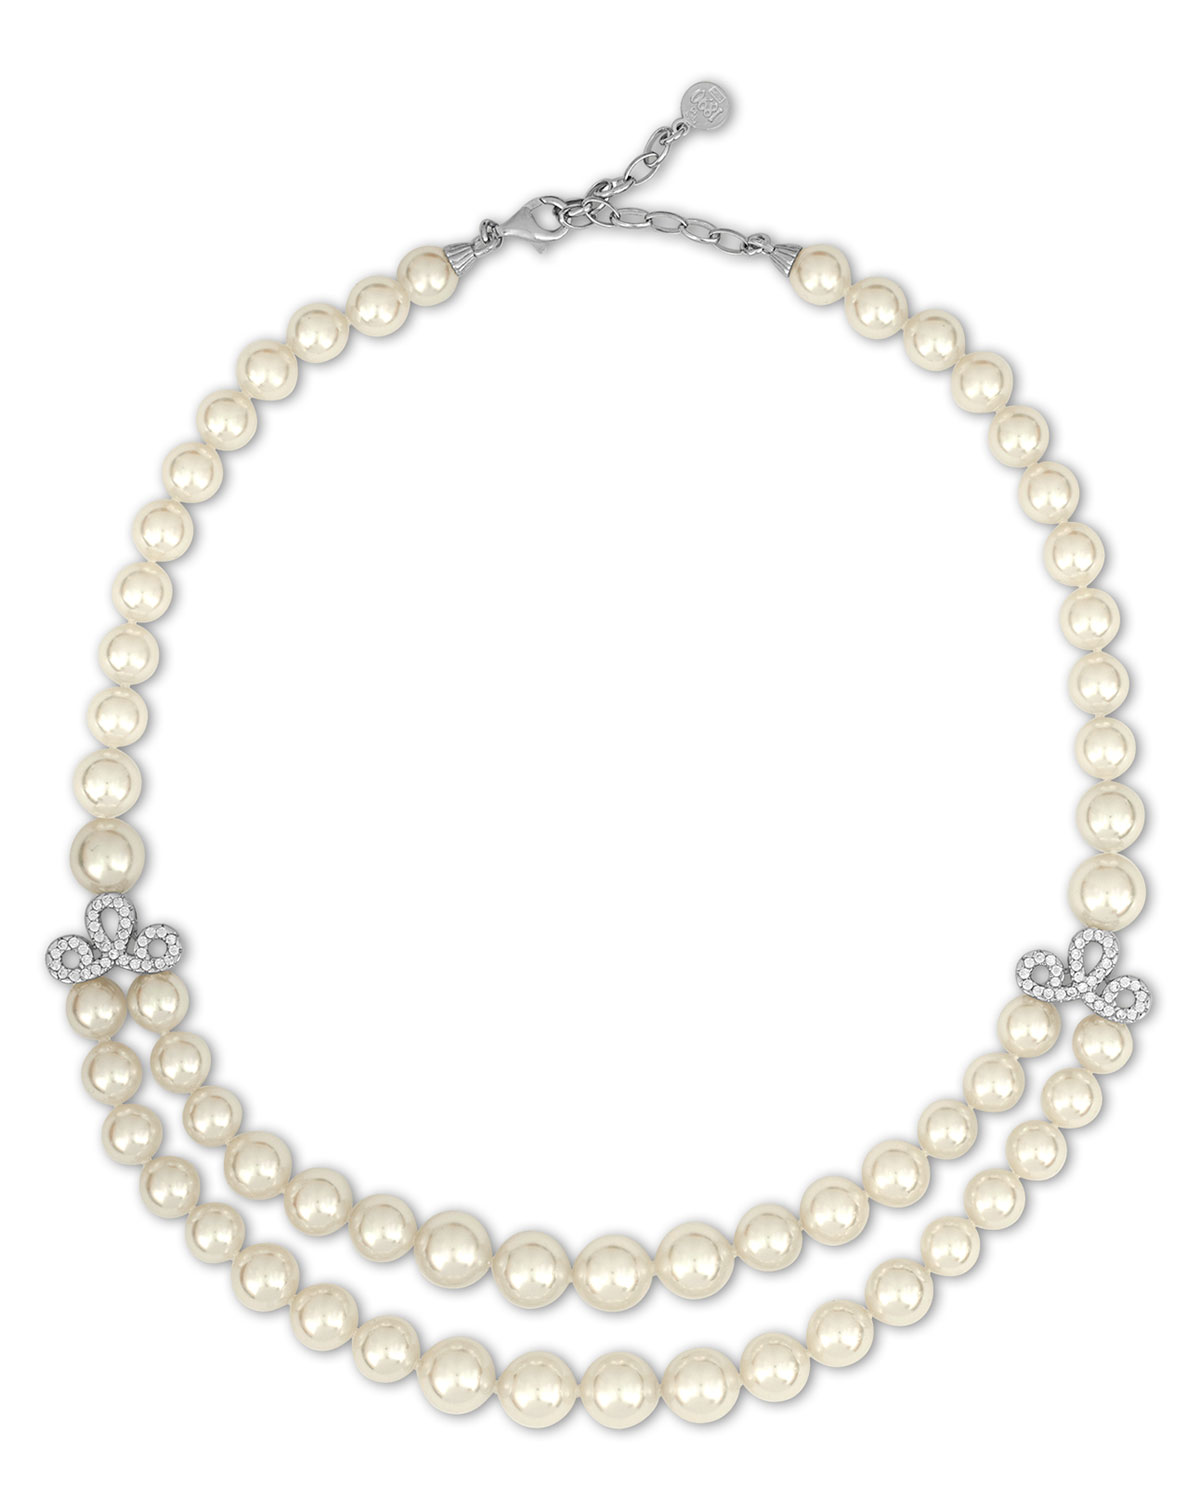 Majorica Pearl Strand Necklace, 60L